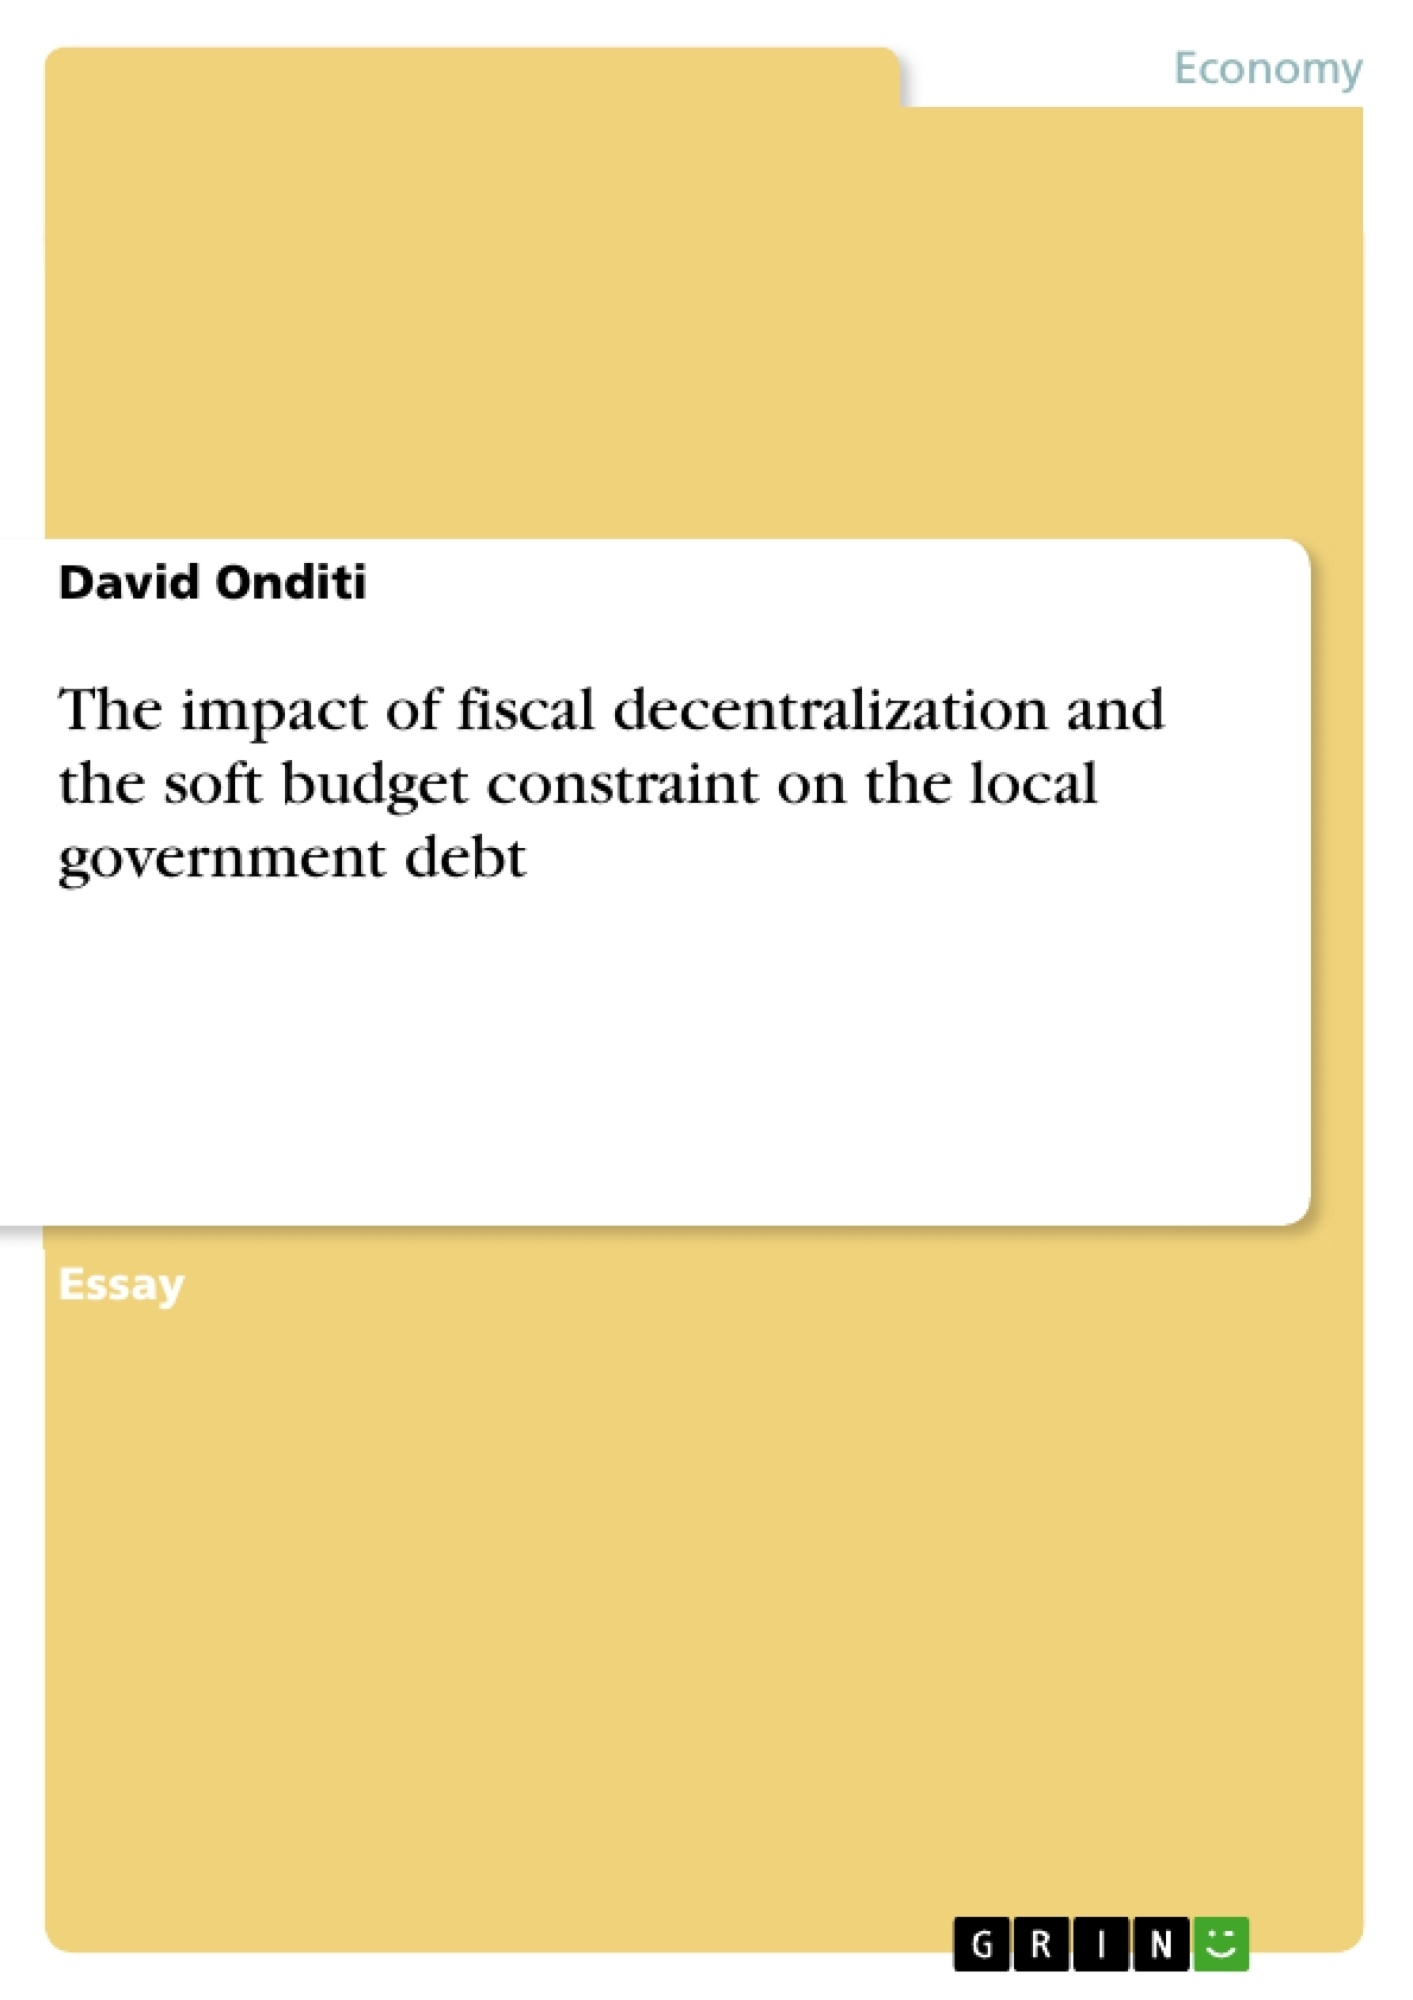 Title: The impact of fiscal decentralization and the soft budget constraint on the local government debt